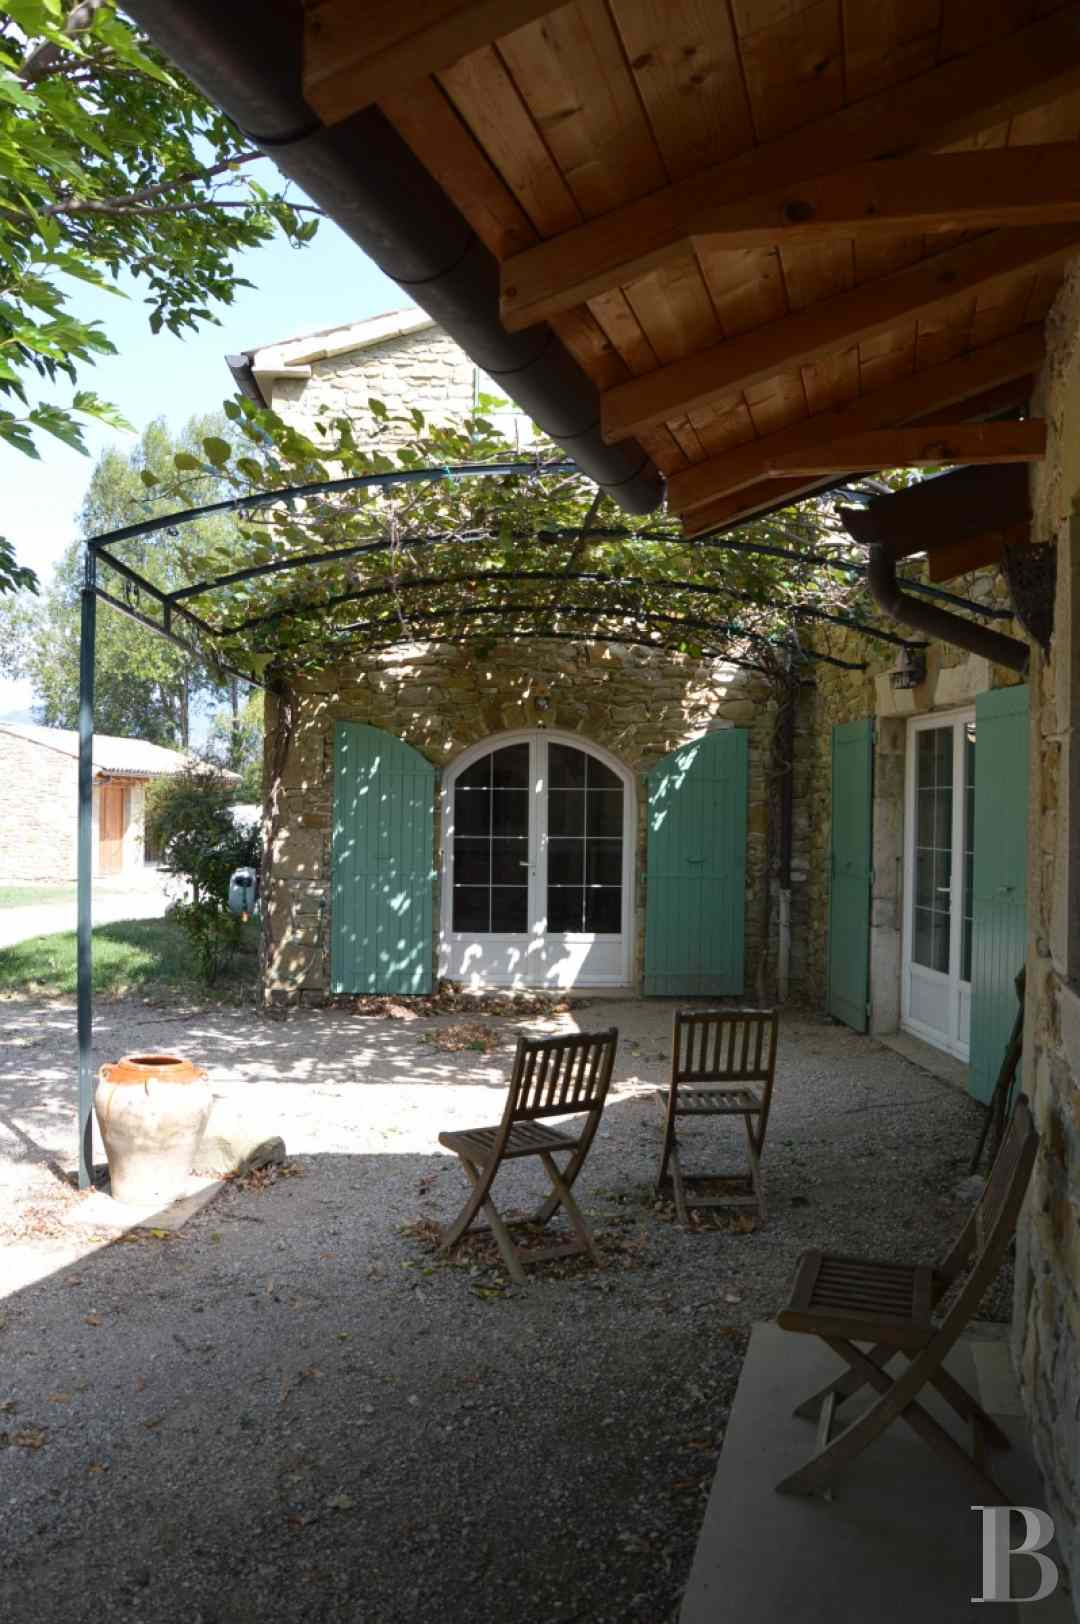 character properties France rhones alps character houses - 5 zoom